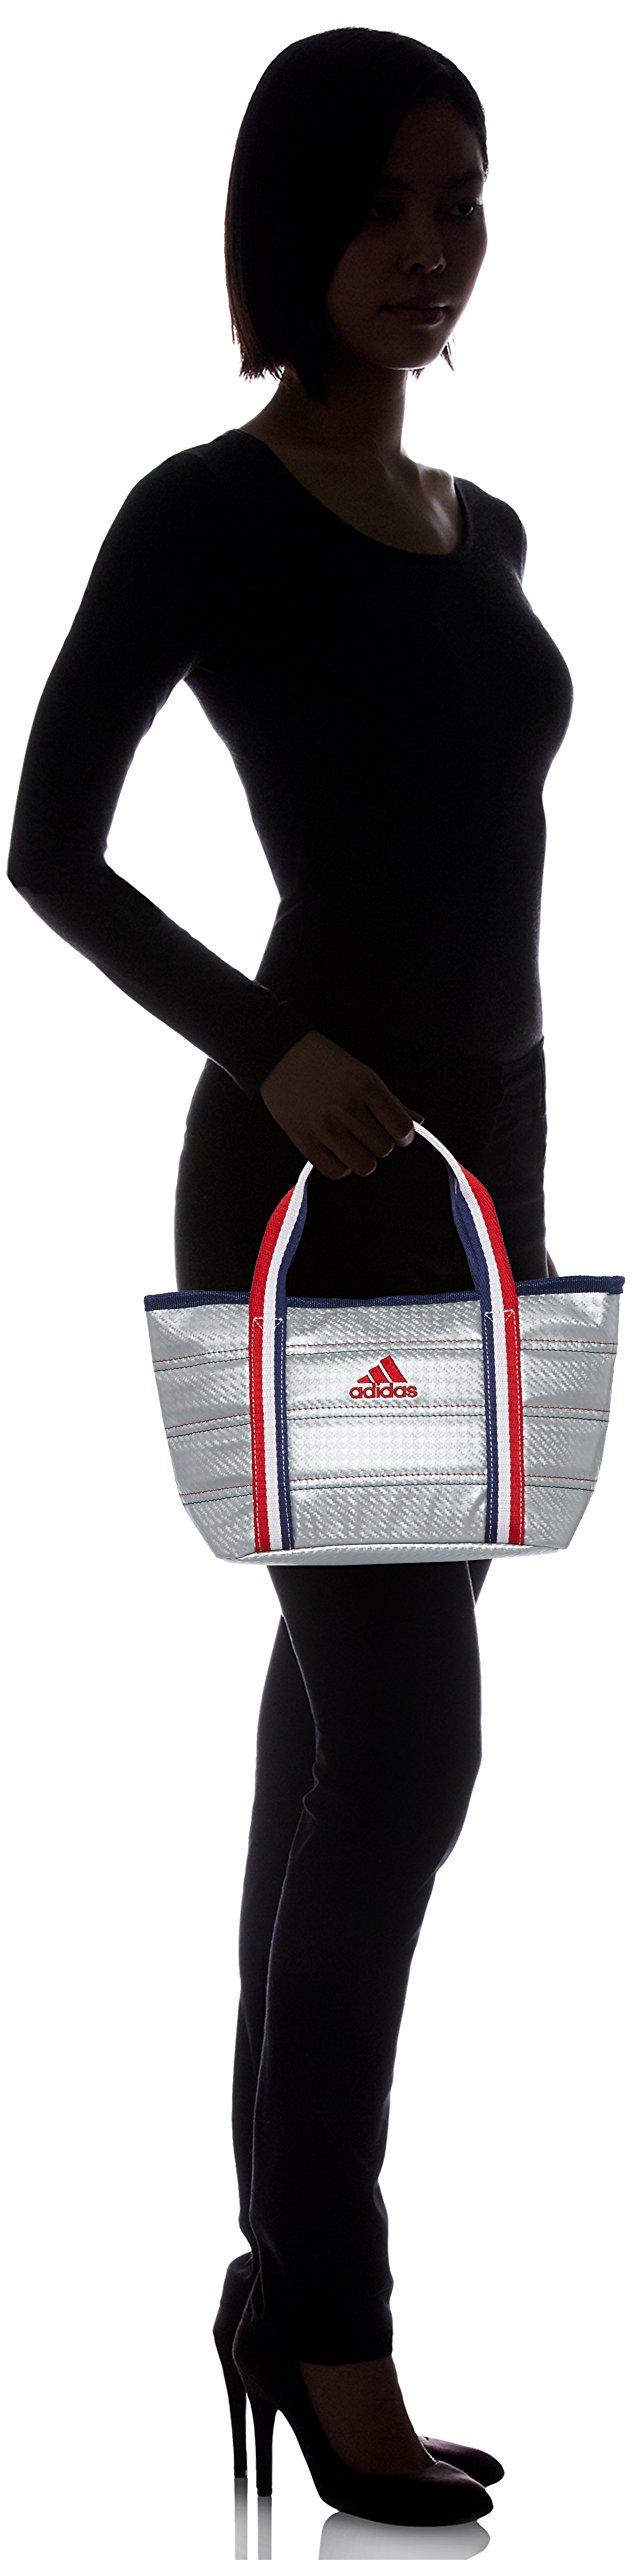 [Adidas Golf] Round Tote Bag L23 × W18 × H13 cm AWT 28 A 42076 Silver by adidas (Image #6)